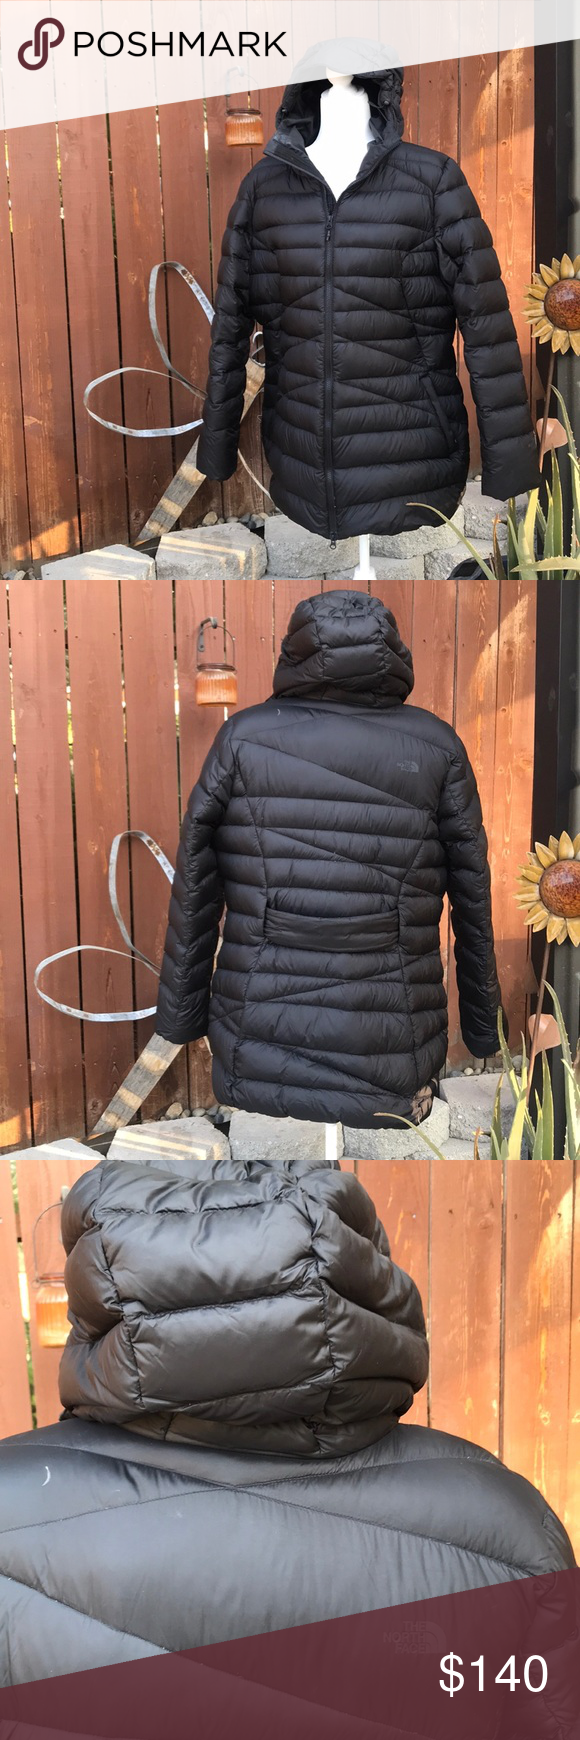 The North Face Piedmont Jacket The North Face North Face Jacket The North Face Jackets Women [ 1740 x 580 Pixel ]